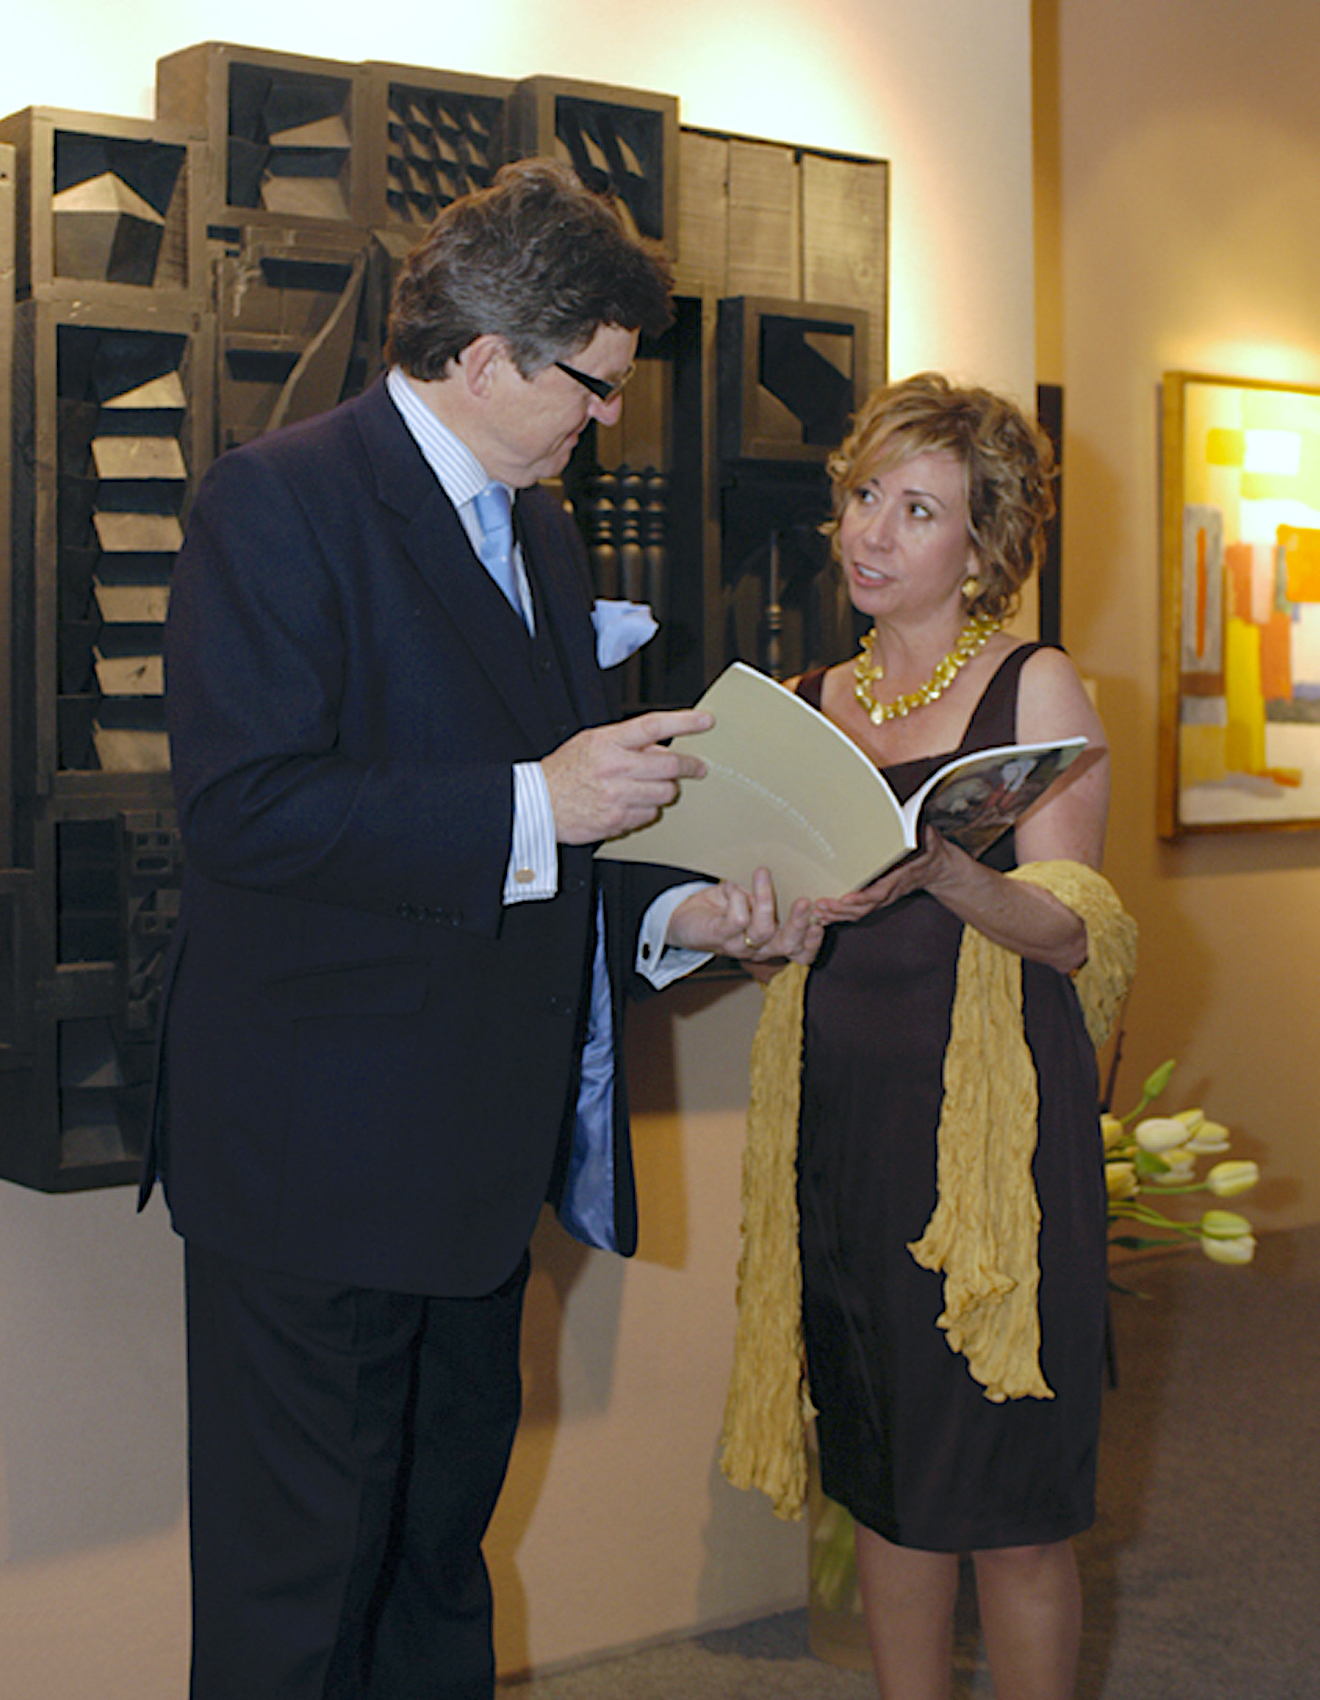 Jonathan Dodd discussing an artwork with another dealer